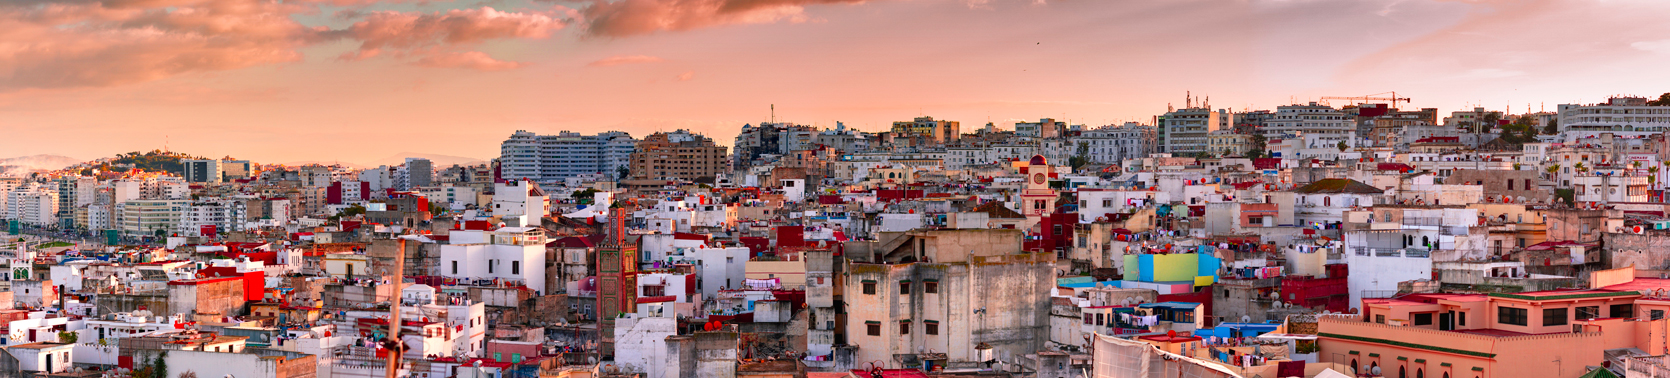 view of city of Morocco